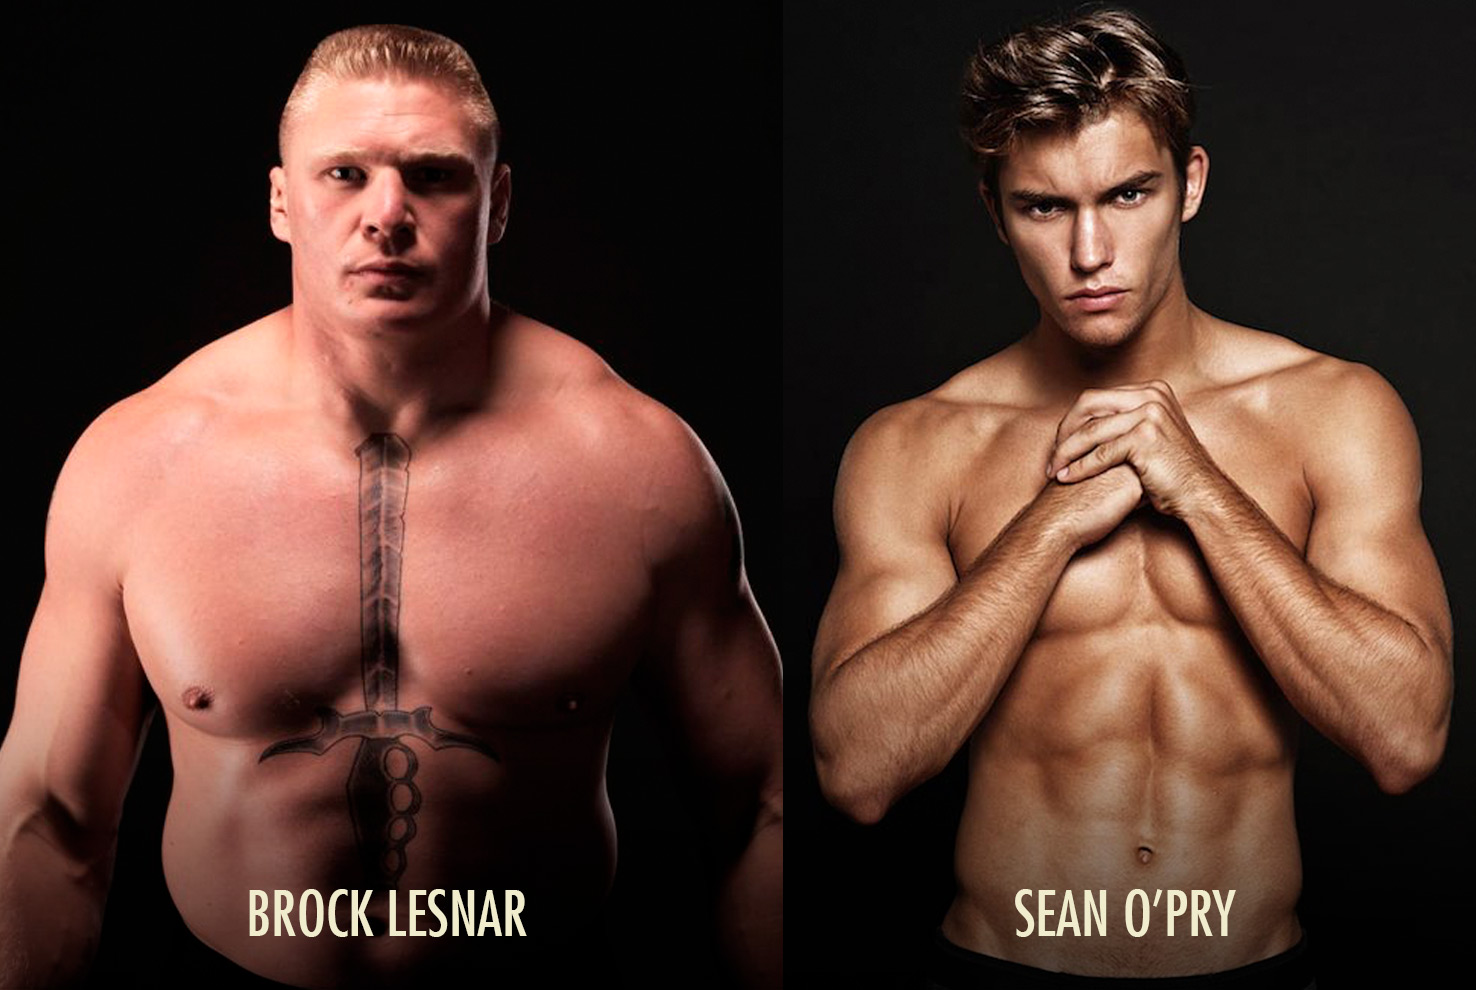 Ectomorph Muscle-Building Genetics Brock Lesnar Body vs Sean O'Pry